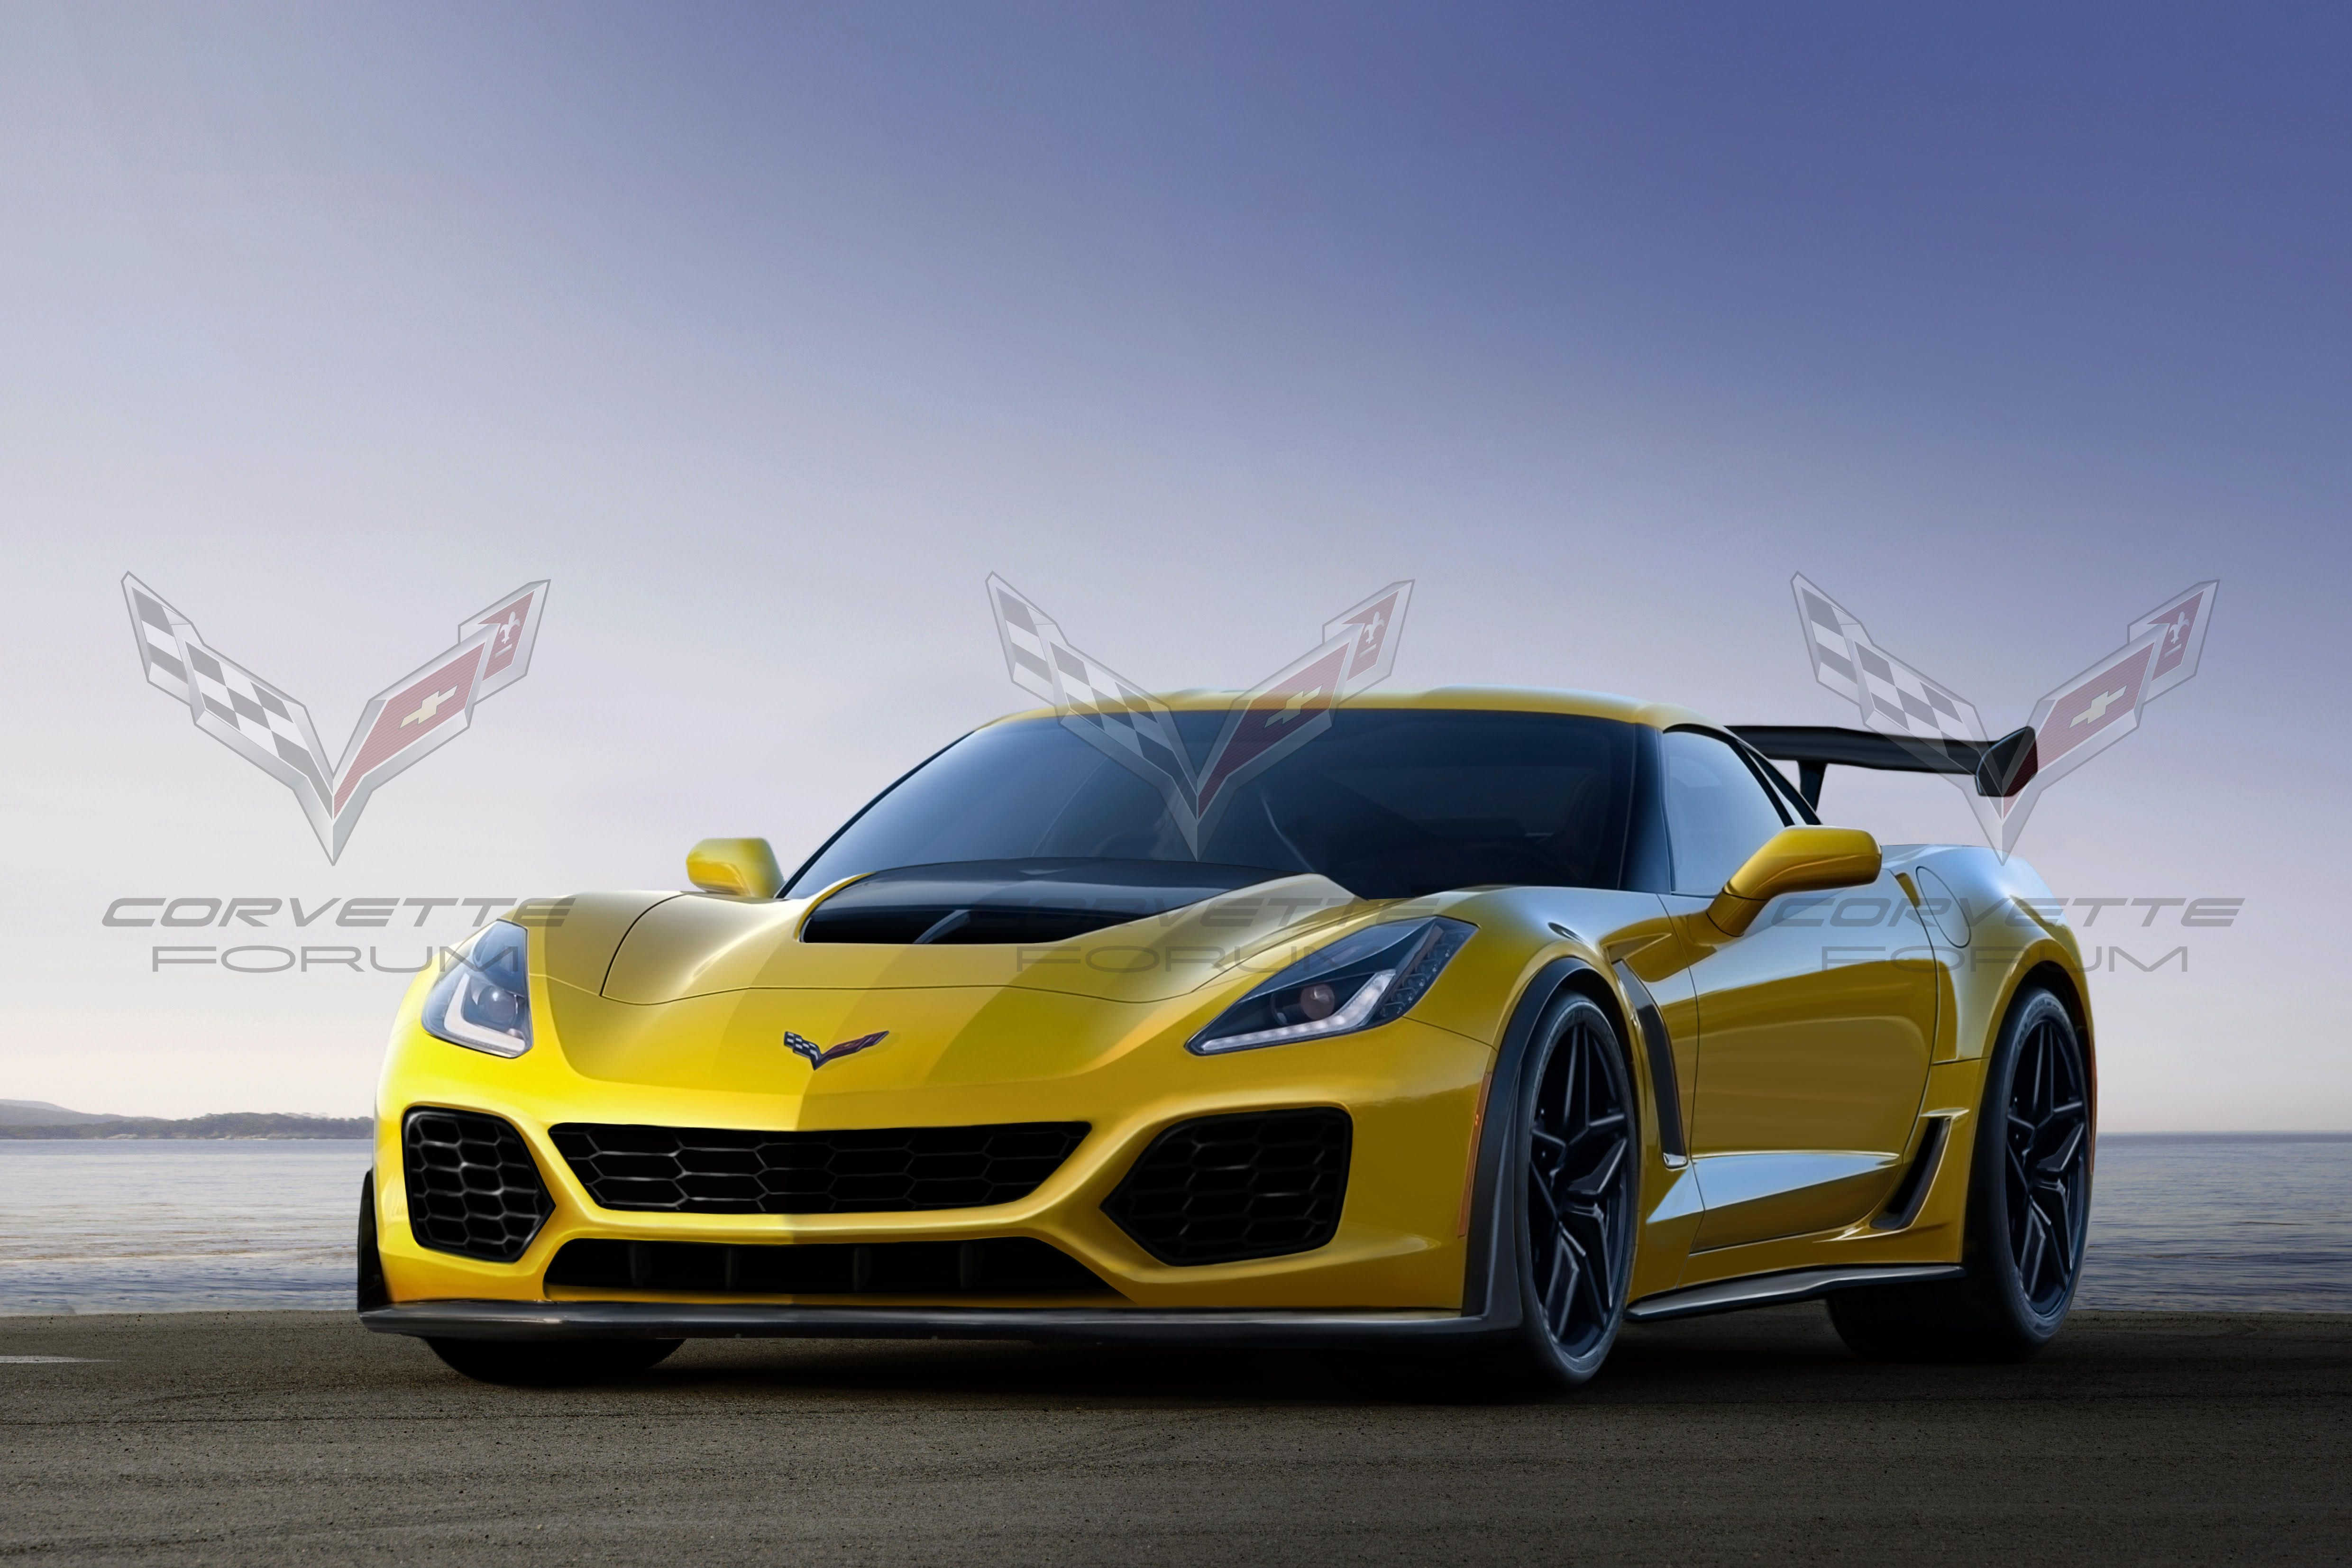 Corvette C7 Zr1 Yahoo Image Search Results Corvette Zr1